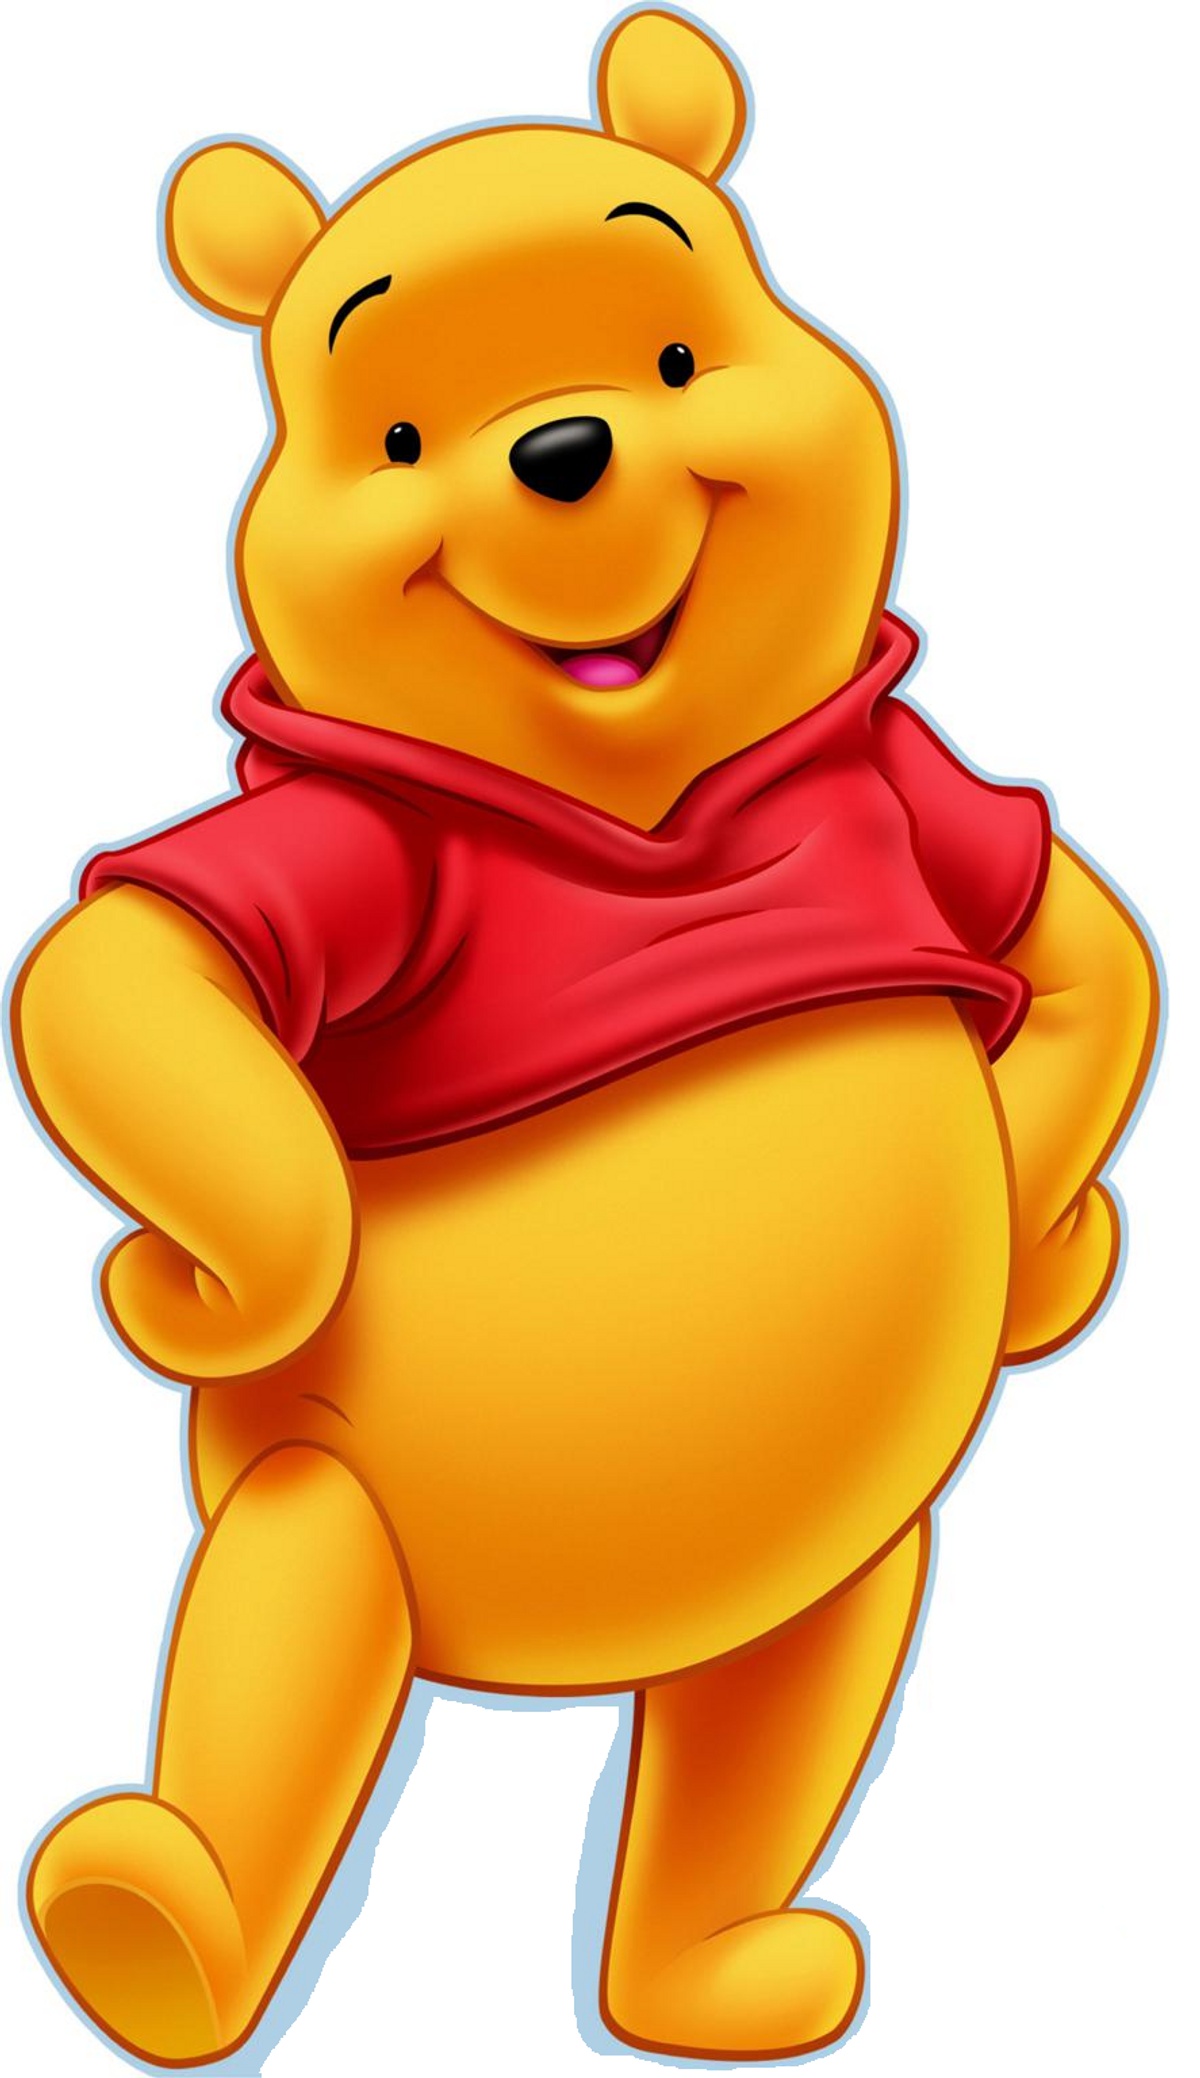 Six Reasons Why We Can Relate To Winnie The Pooh